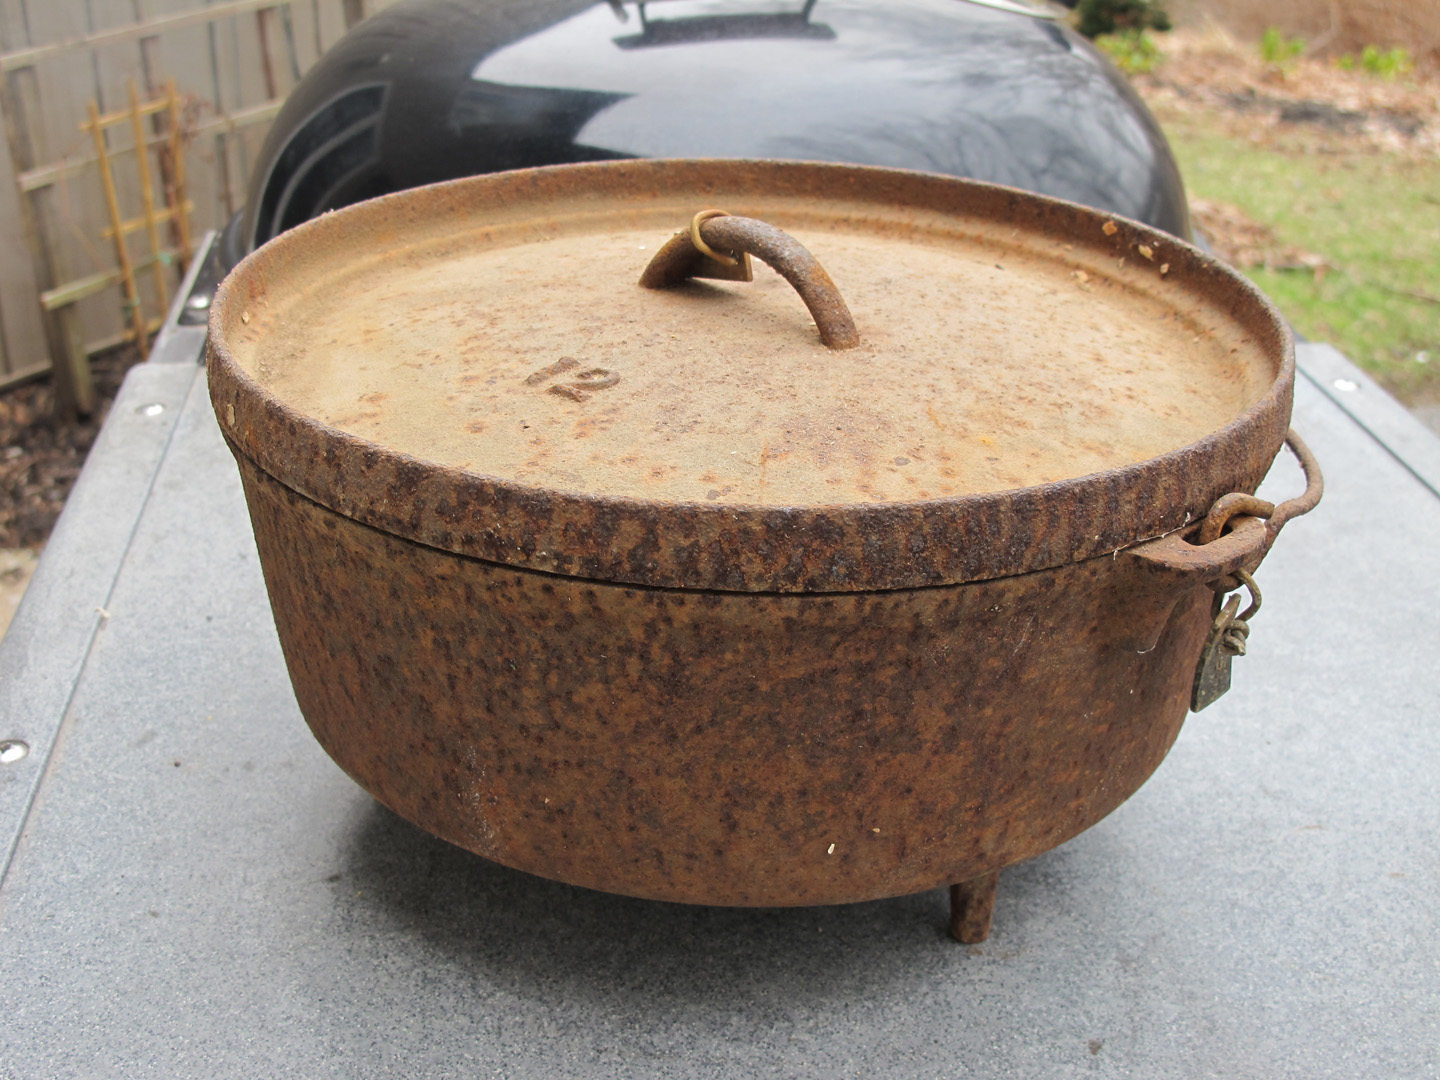 restoring a cast iron dutch oven using electrolysis weber kettle club. Black Bedroom Furniture Sets. Home Design Ideas